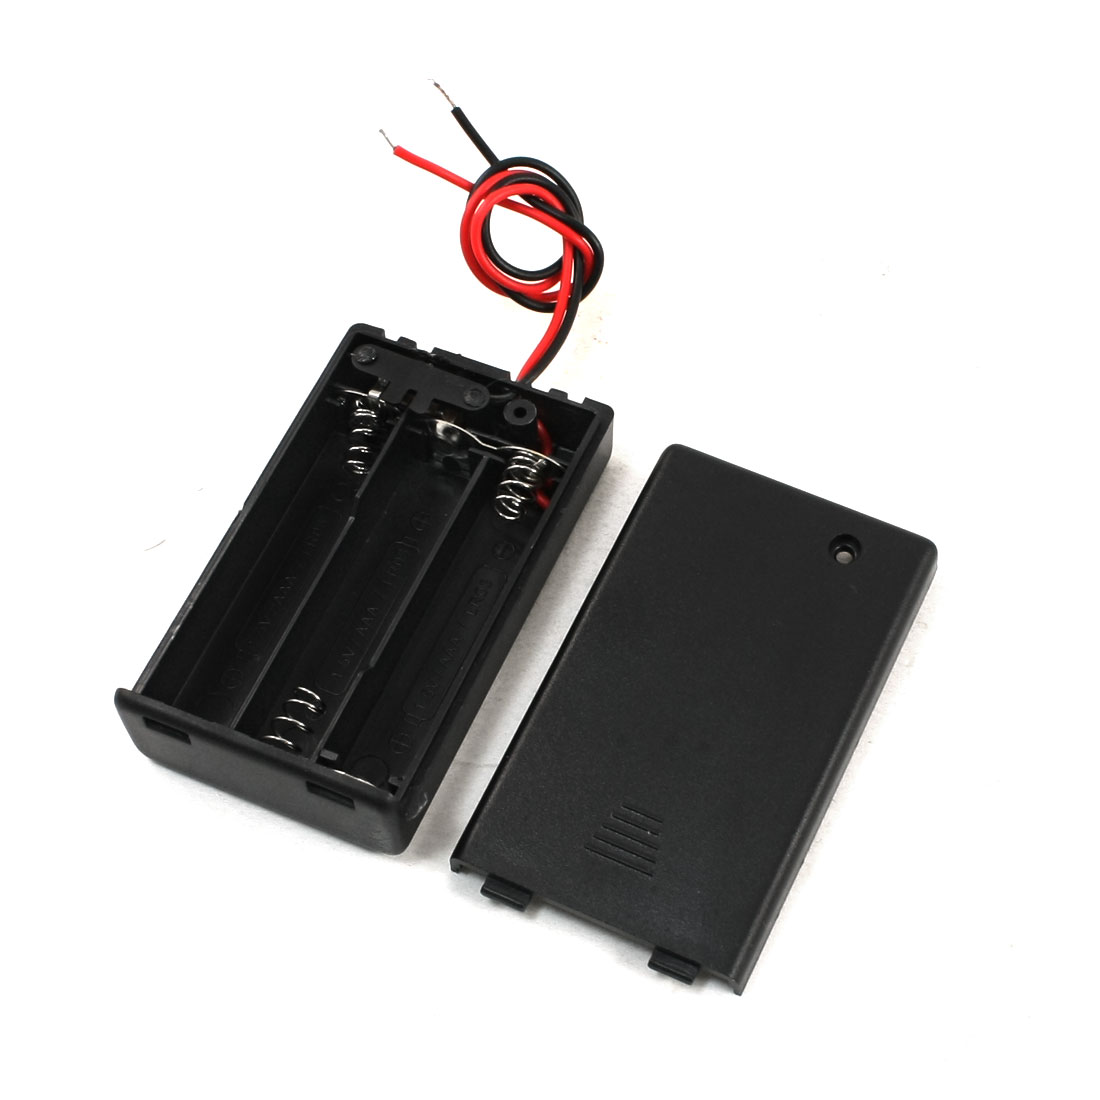 2Pcs ON/OFF Switch Two Leads Battery Holder Box for 3 x 1.5V AAA Batteries